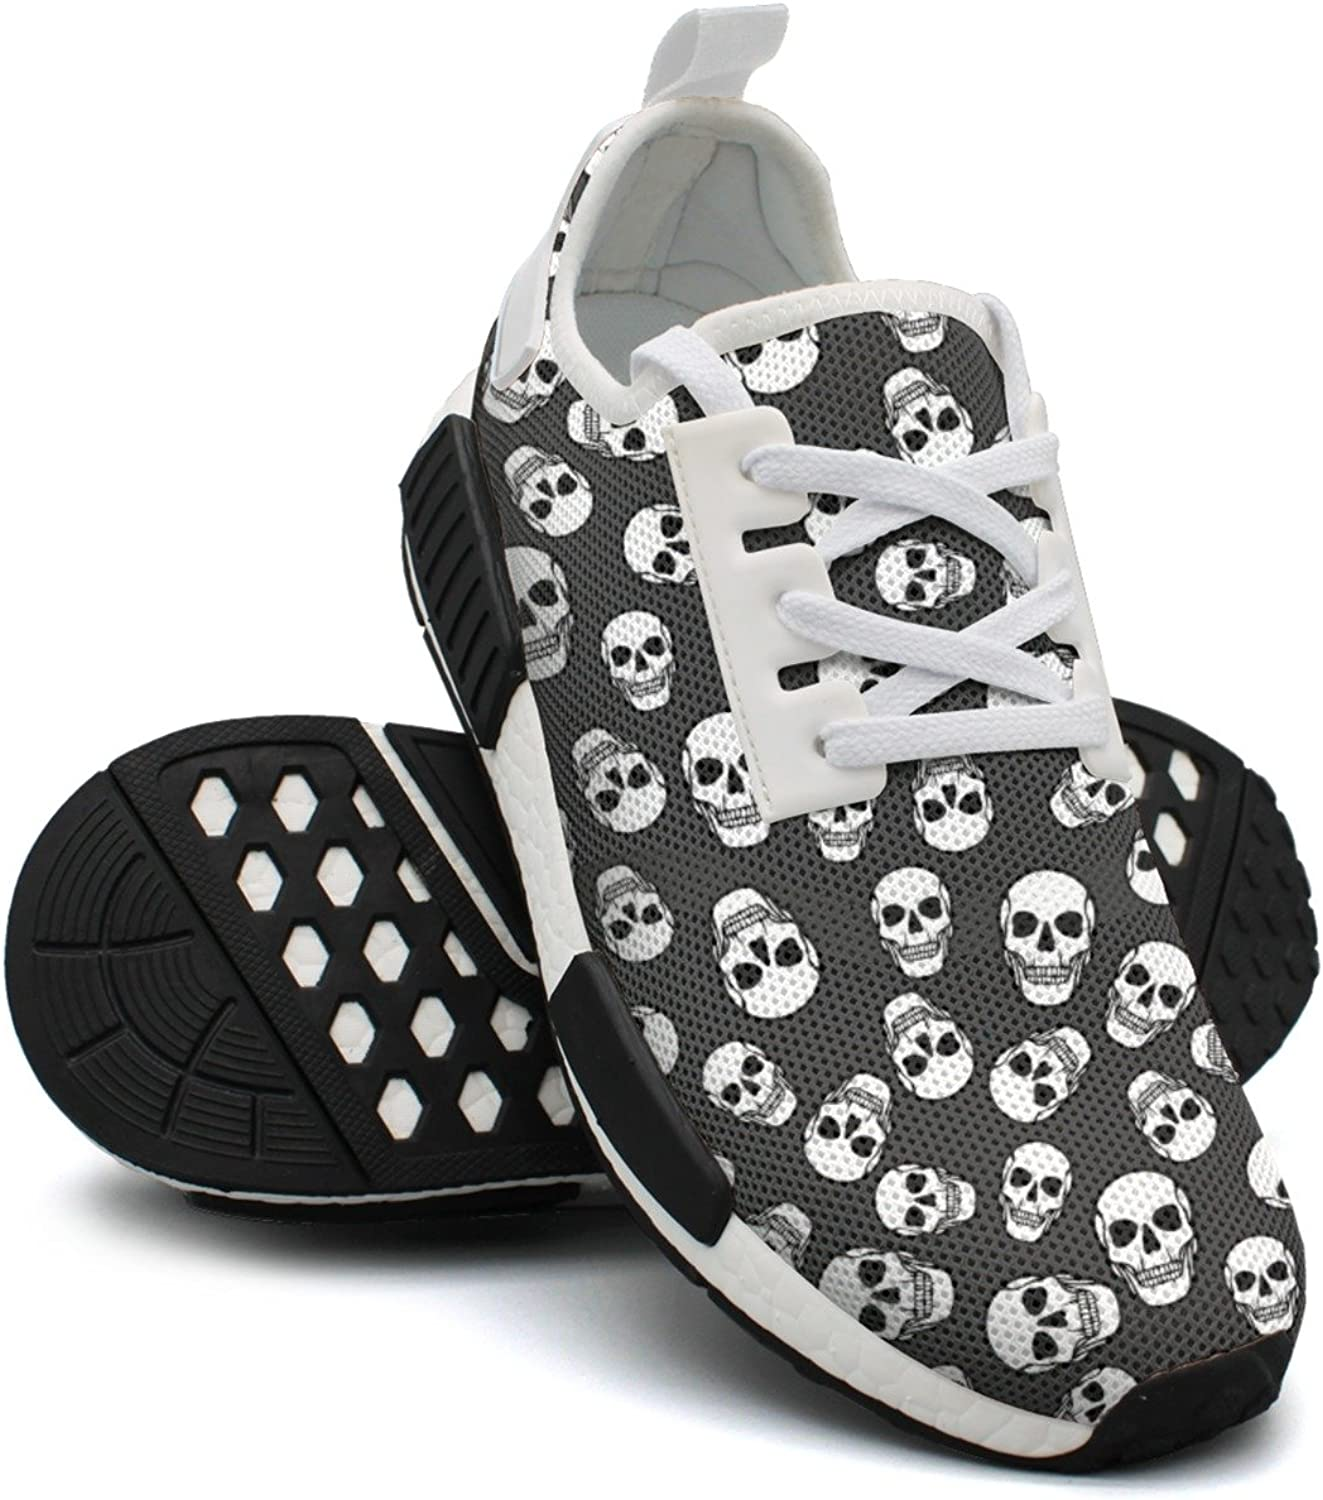 Dreadful Skulls Trail Running shoes Nmd Sport Casual shoes